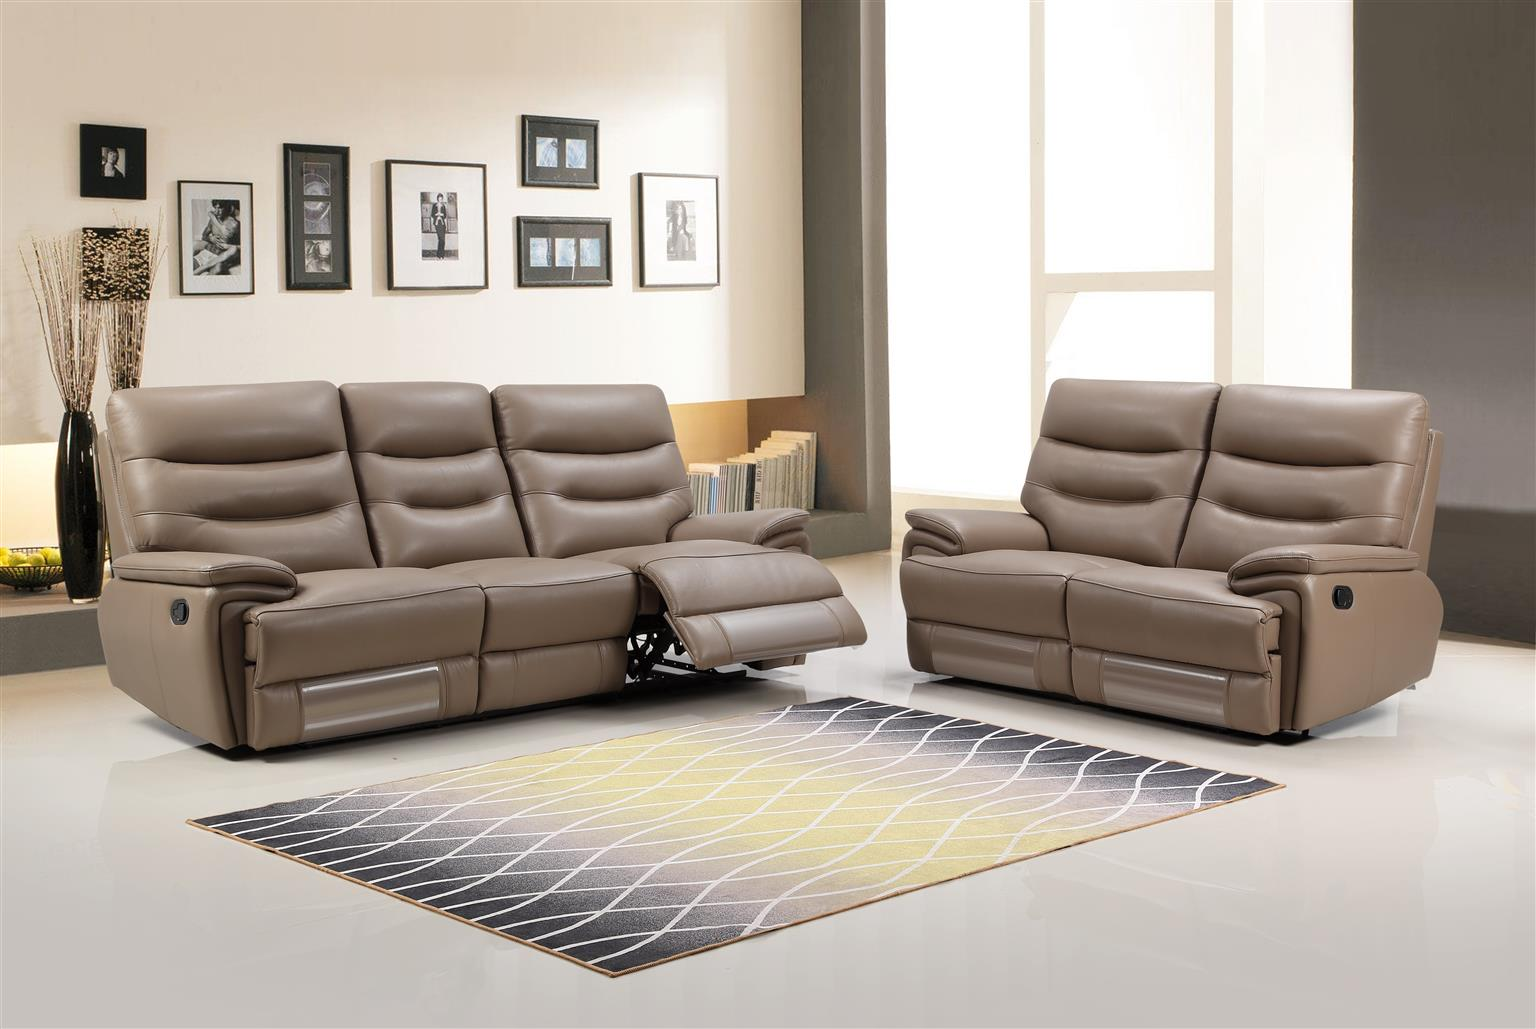 3 PIECE EXPRESSO LOUNGE SUITE FOR ONLY R 18 999 BRAND NEW !!!!!!!!!!!!!!